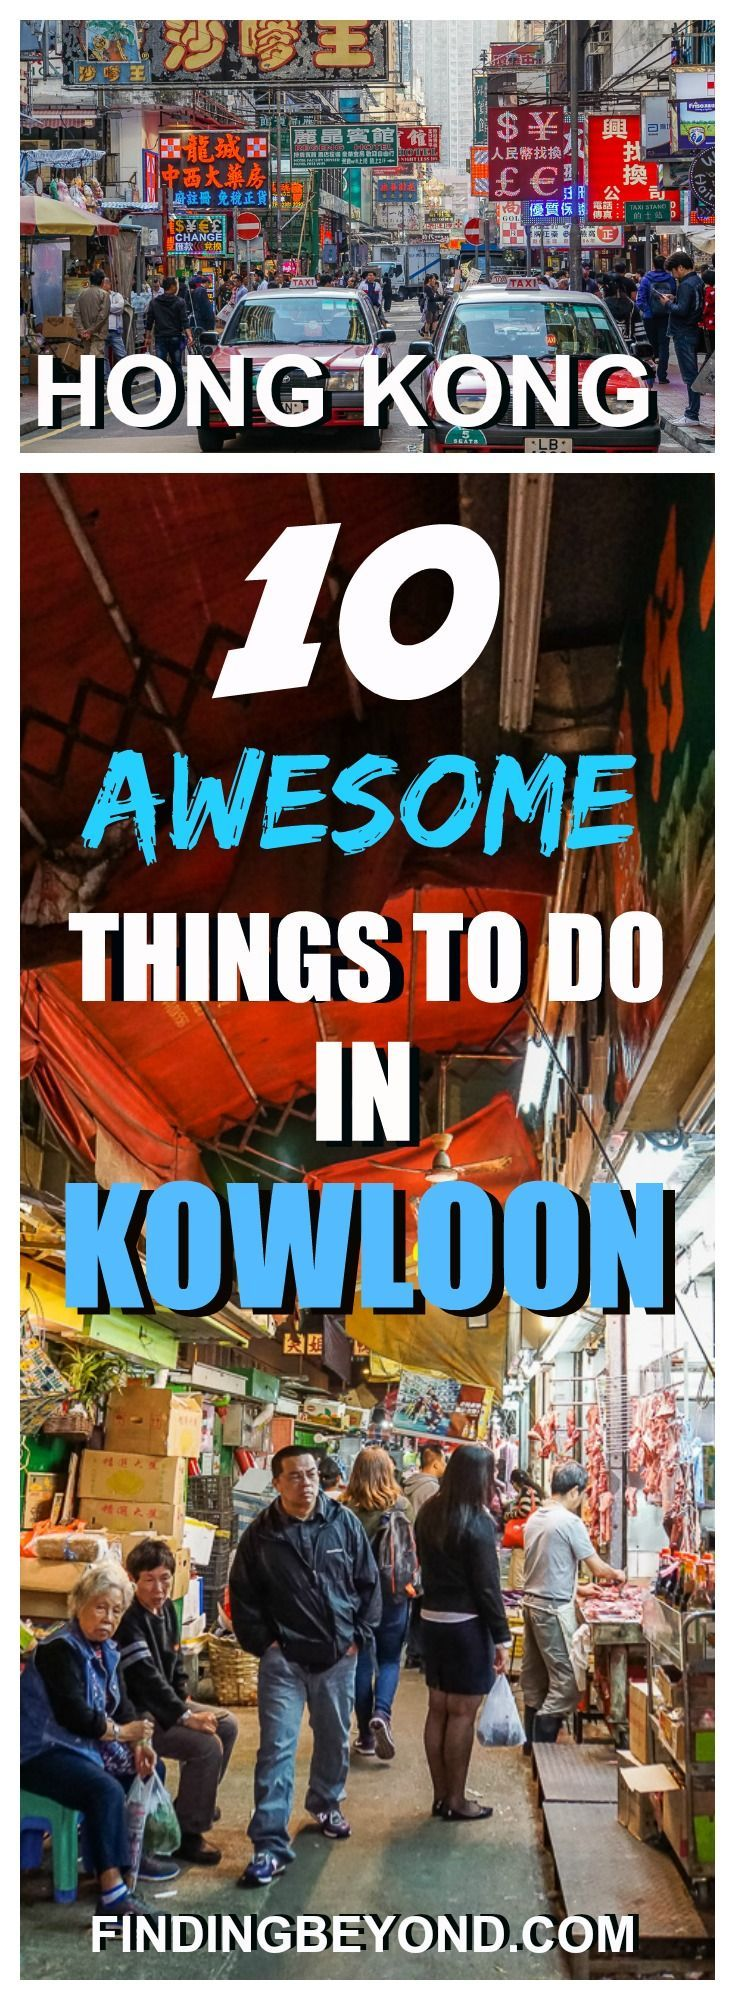 10 Things to do in Kowloon